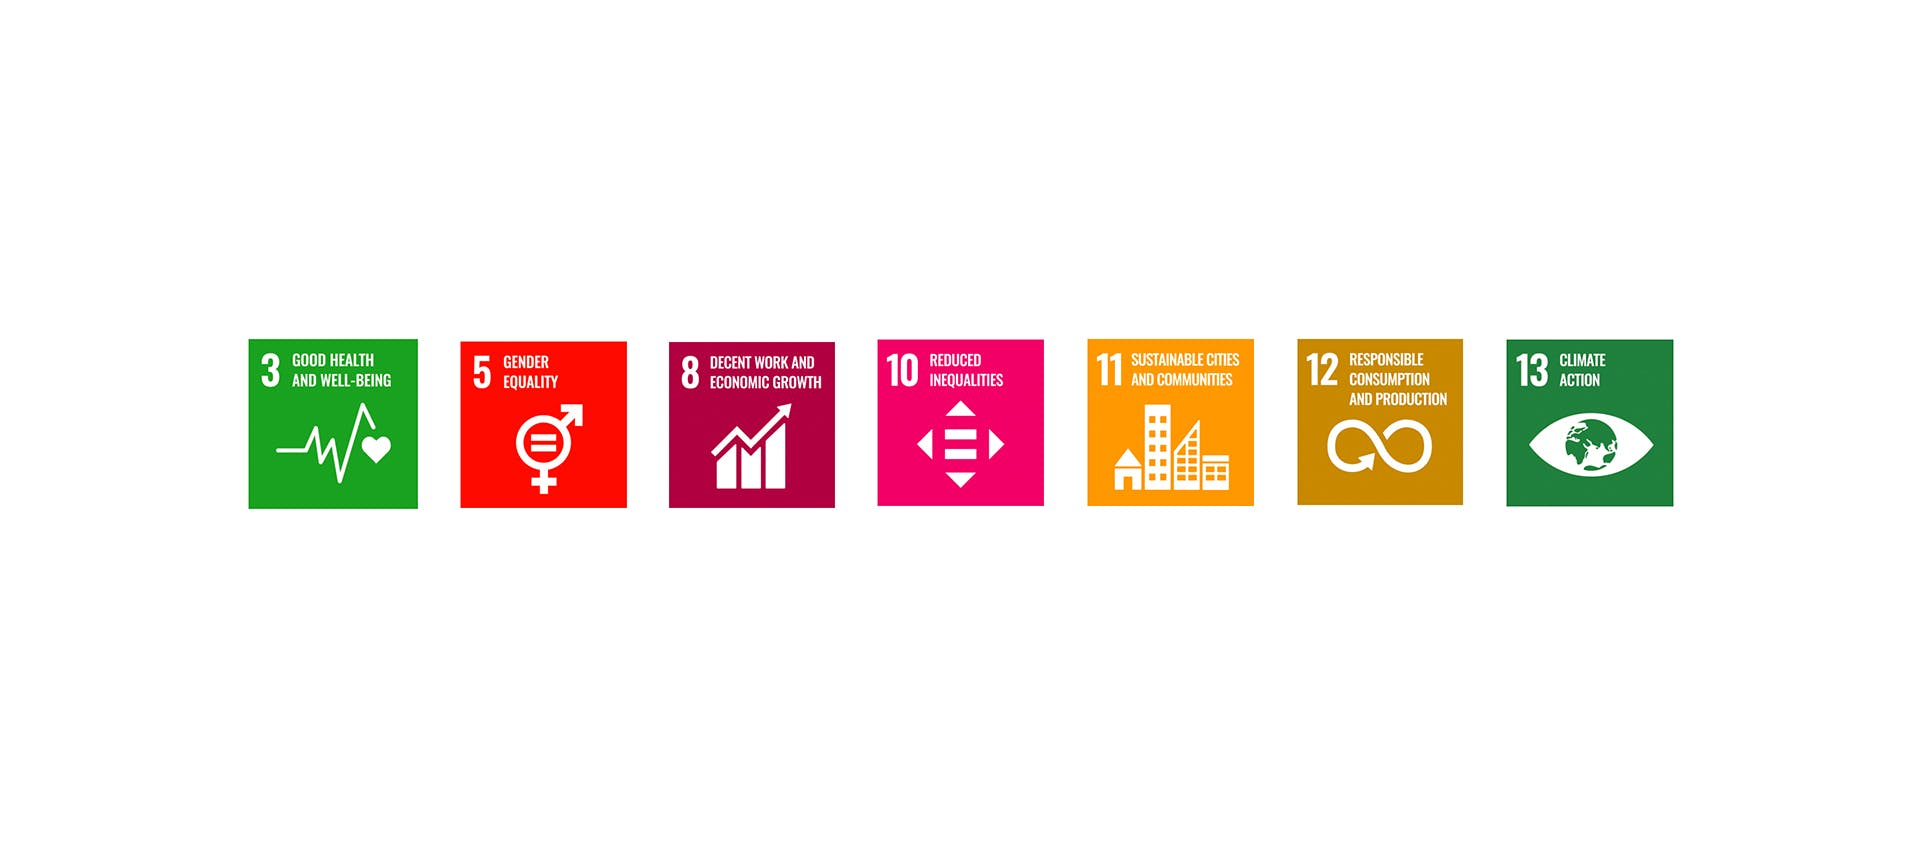 Voltaire program - 7 of the United Nations Sustainable Development Goals: Good Health and well-being, Gender equality, Decent work and economic growth, reduced inequalities, sustainable cities and communities, Responsible consumption and production and Climate action